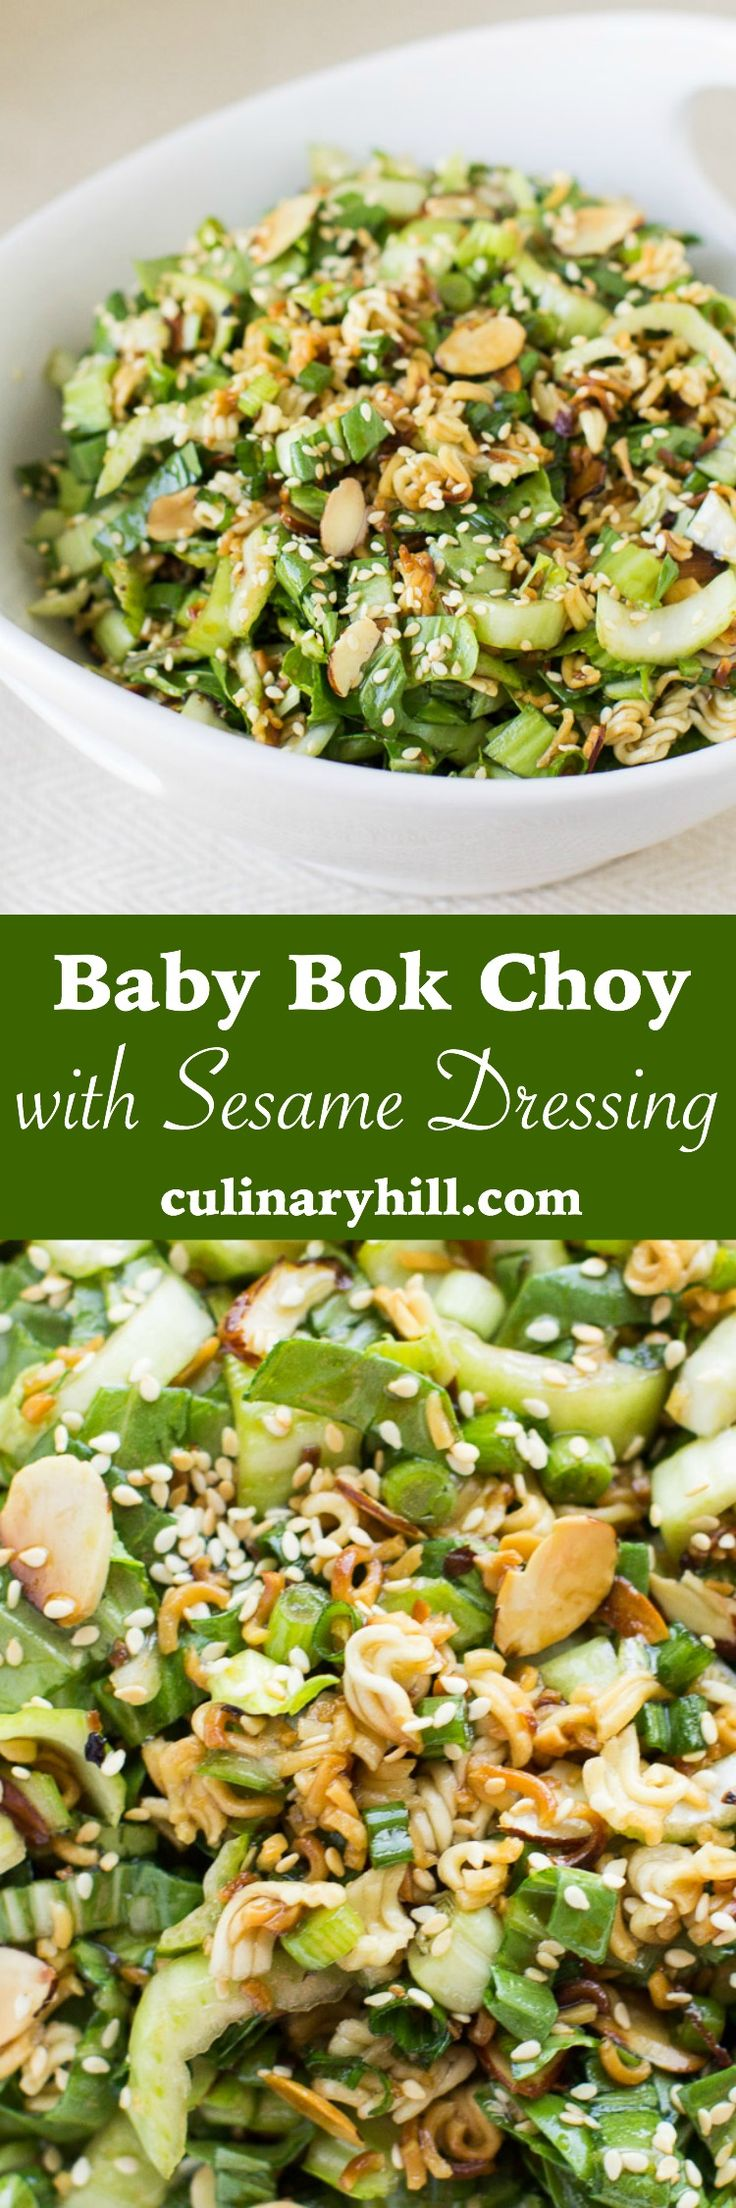 Baby Bok Choy with Sesame Dressing - Whether you're new to baby bok choy or an old fan, you'll love this crunchy salad! All ingredients can be prepped ahead of time and assembled in minutes.